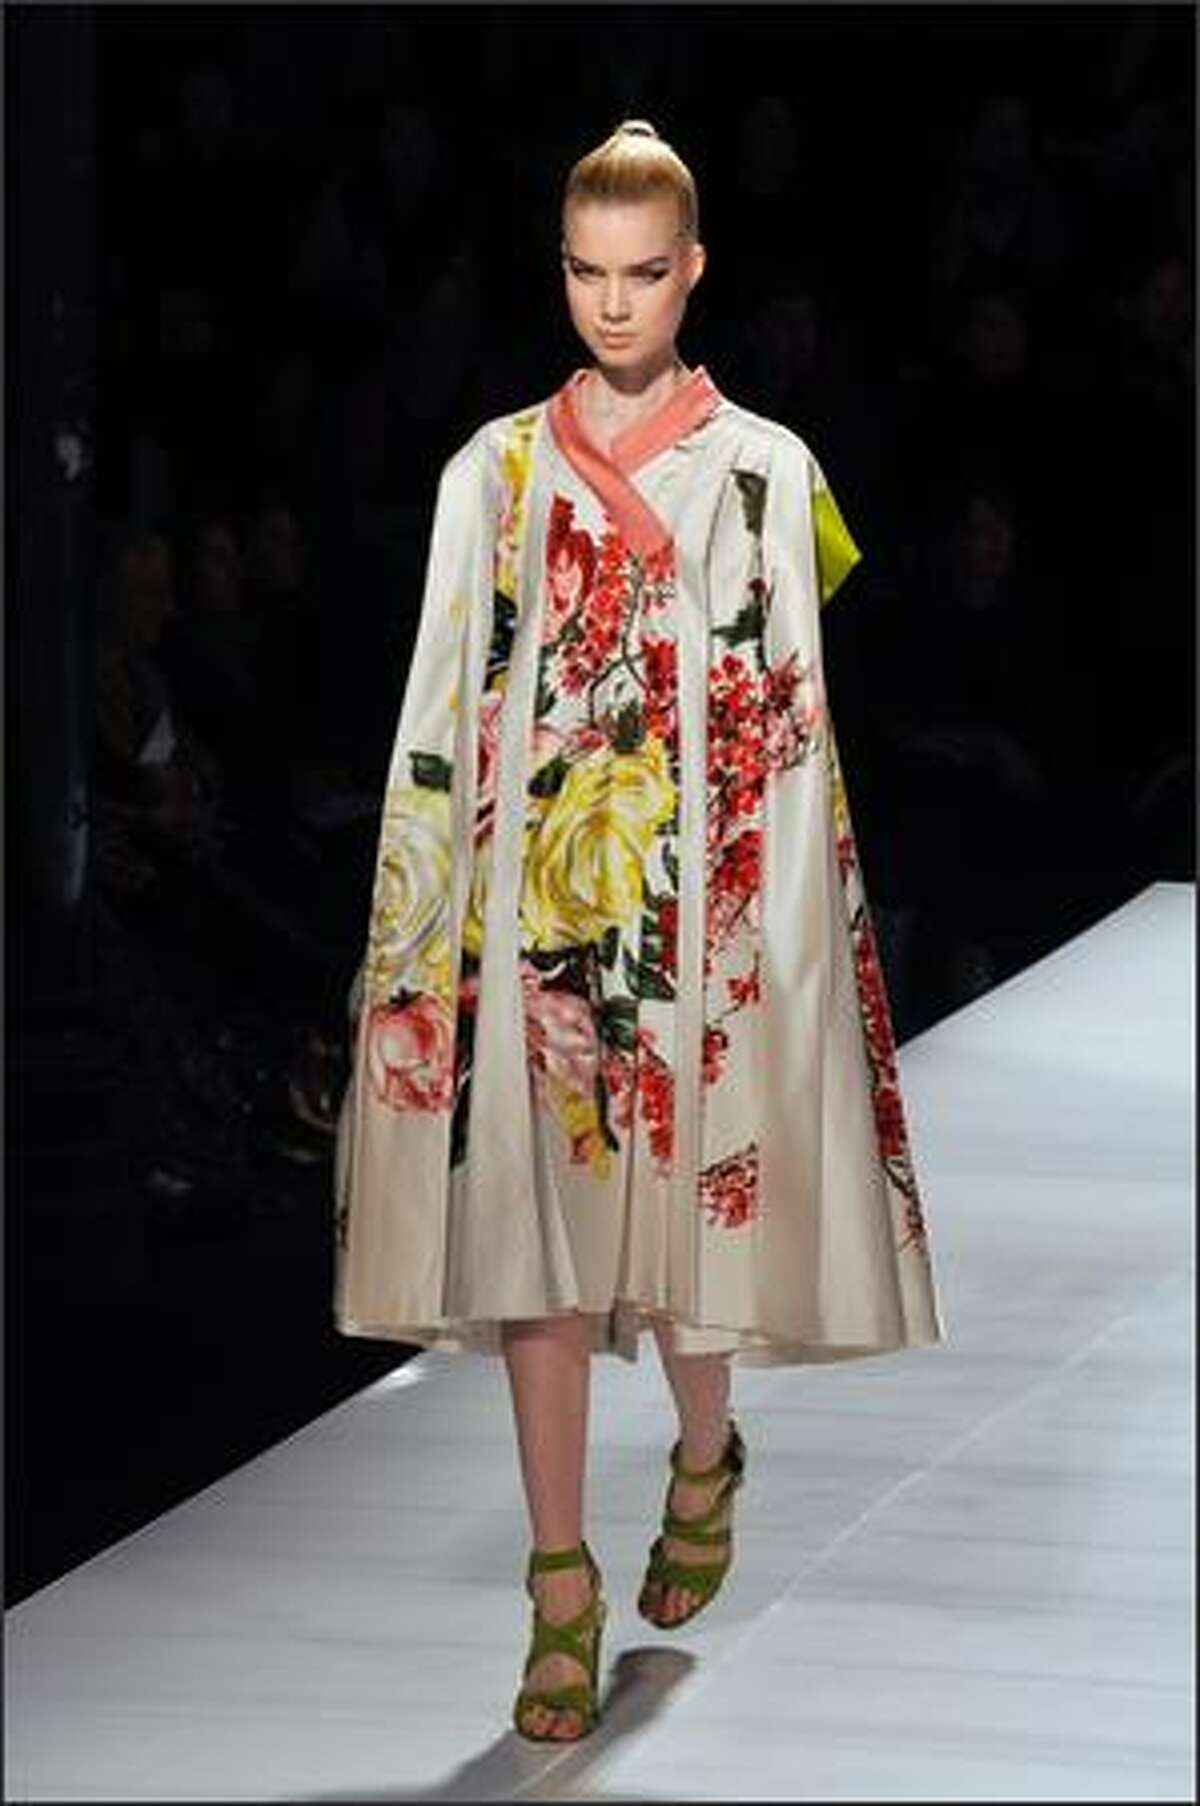 A model presents a creation by Antonio Marras for Kenzo.